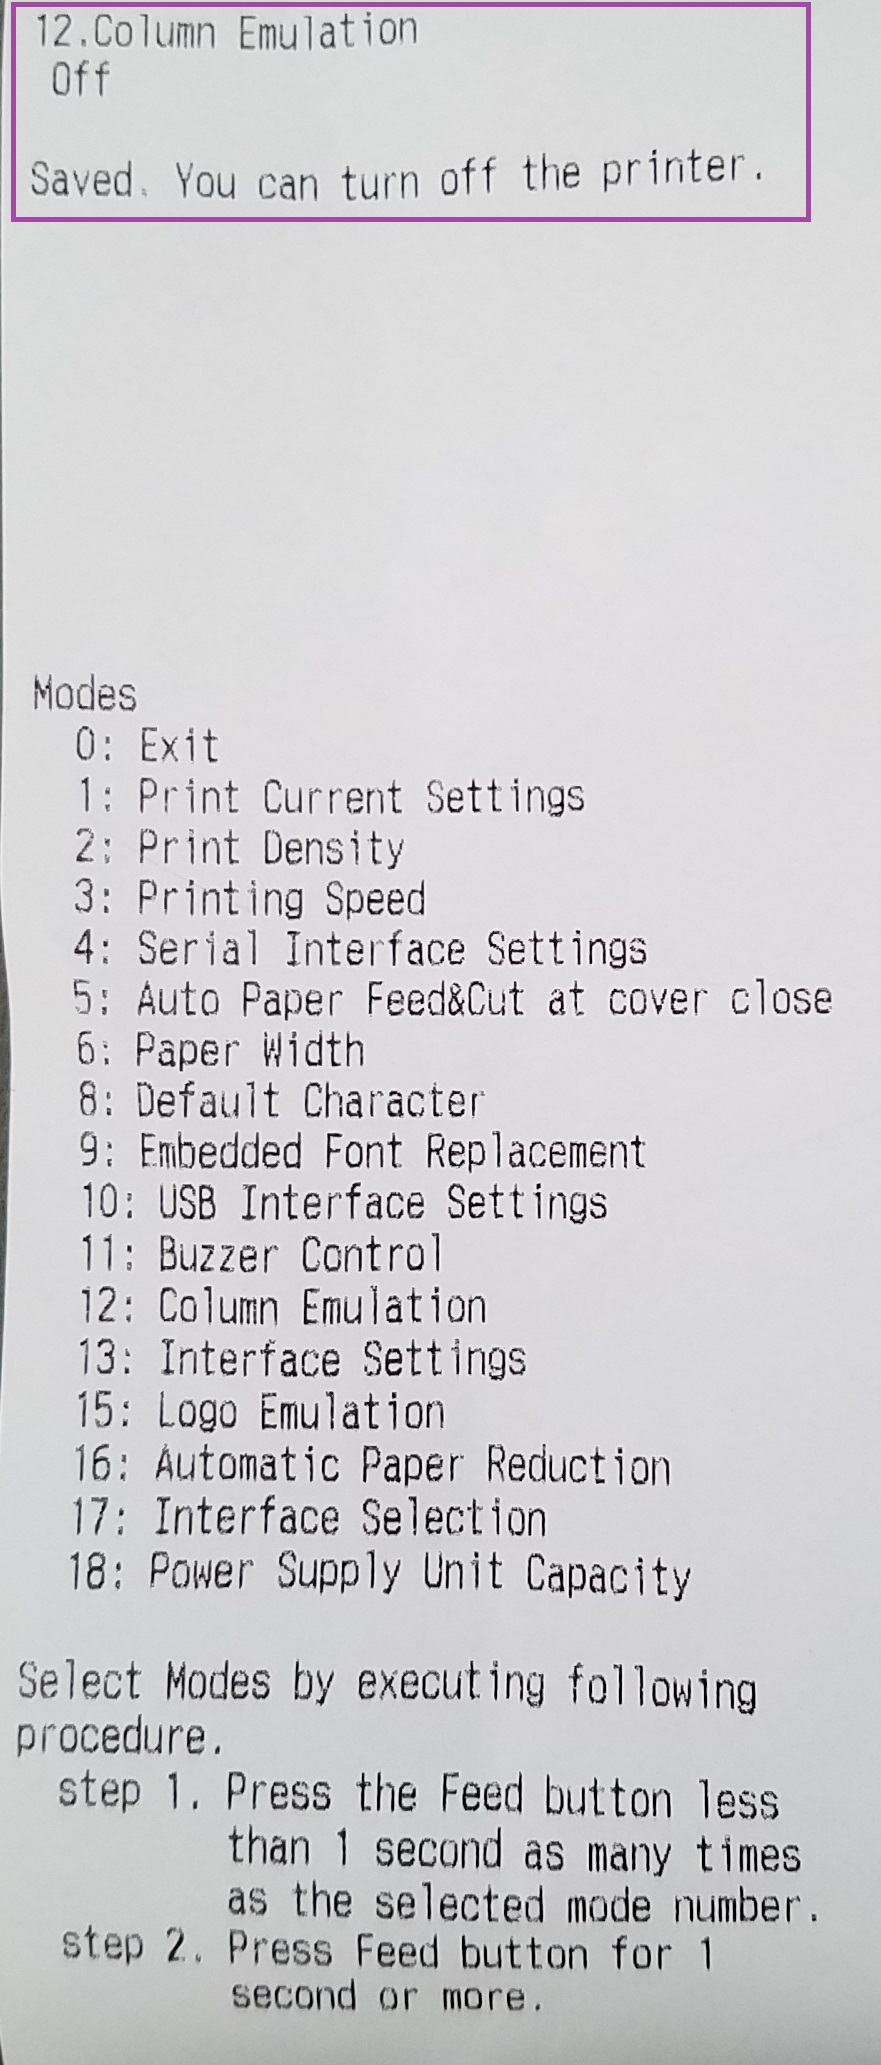 Column Settings Adjustments on Epson T20 - Printing is Off